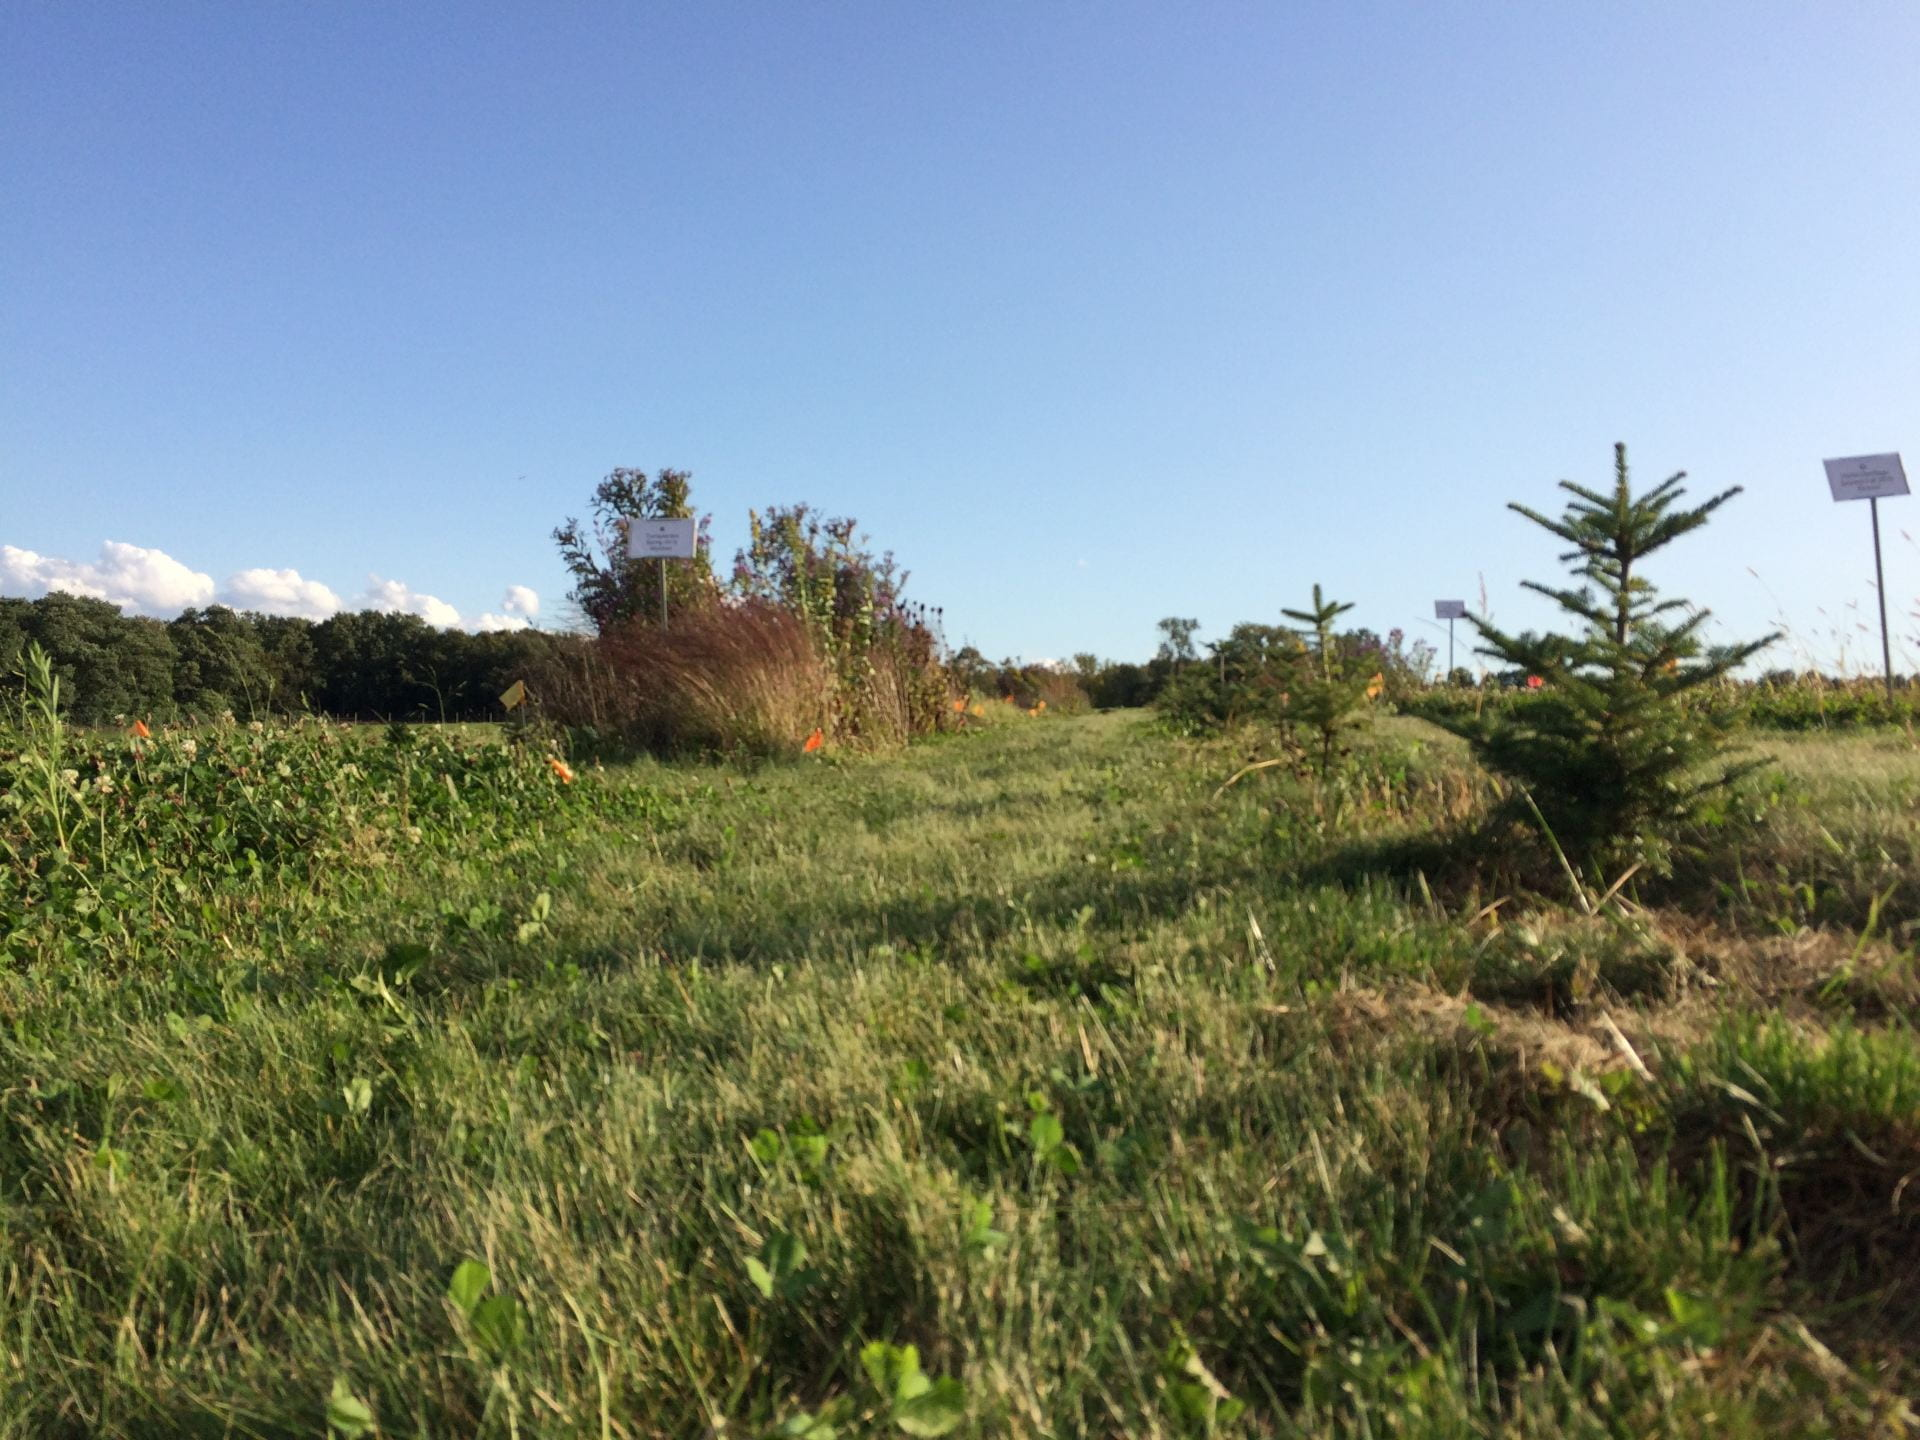 photo shows at least one plot of beneficial habitat plants and part of a row of small evergreens